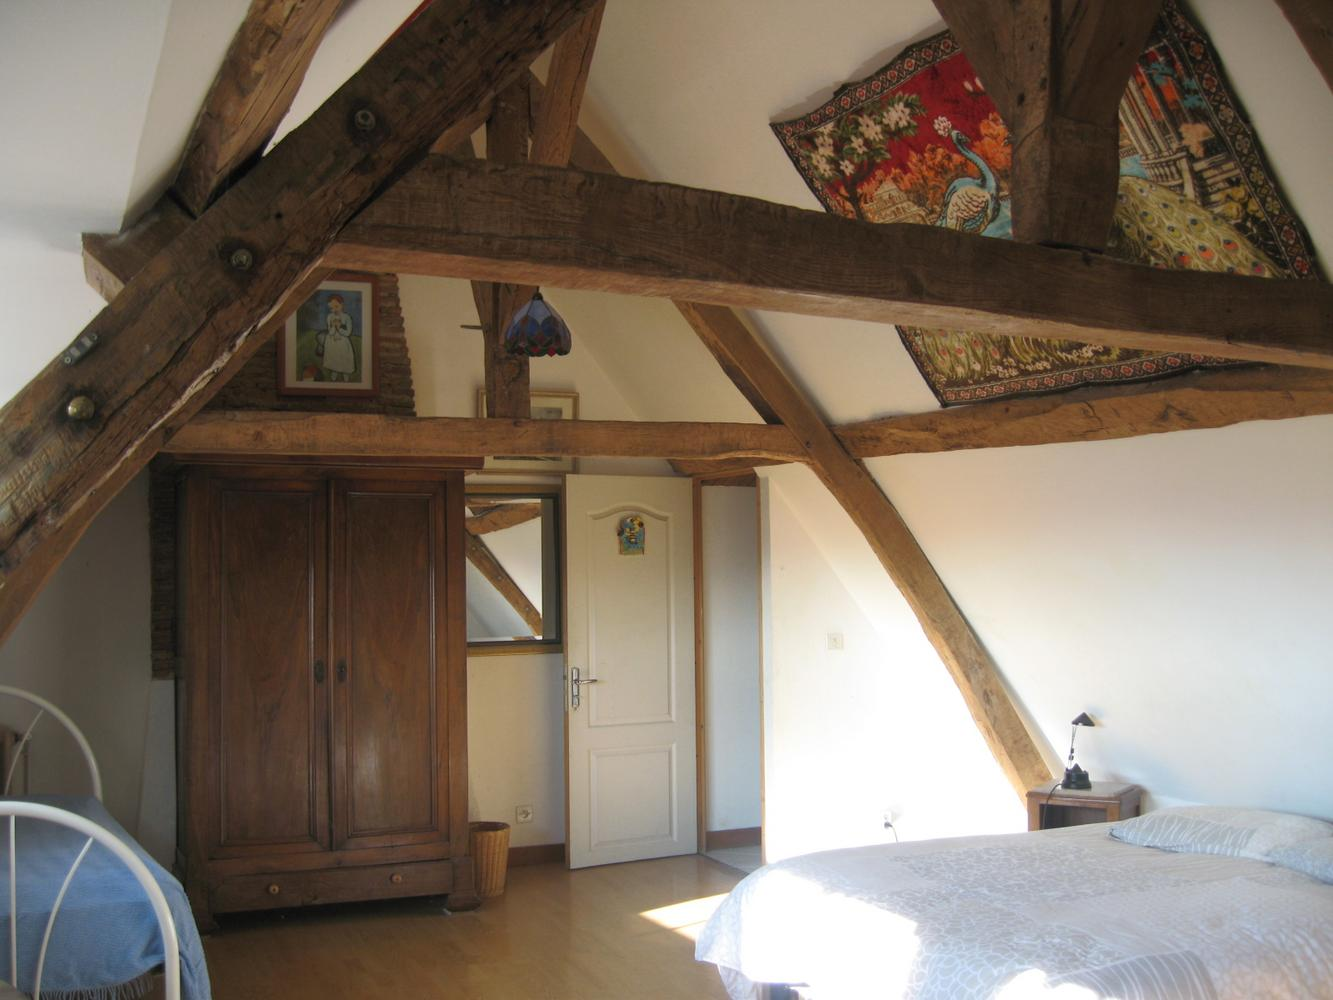 Chambre 3*** 1001 nuits en Berry, Indre - photo #2